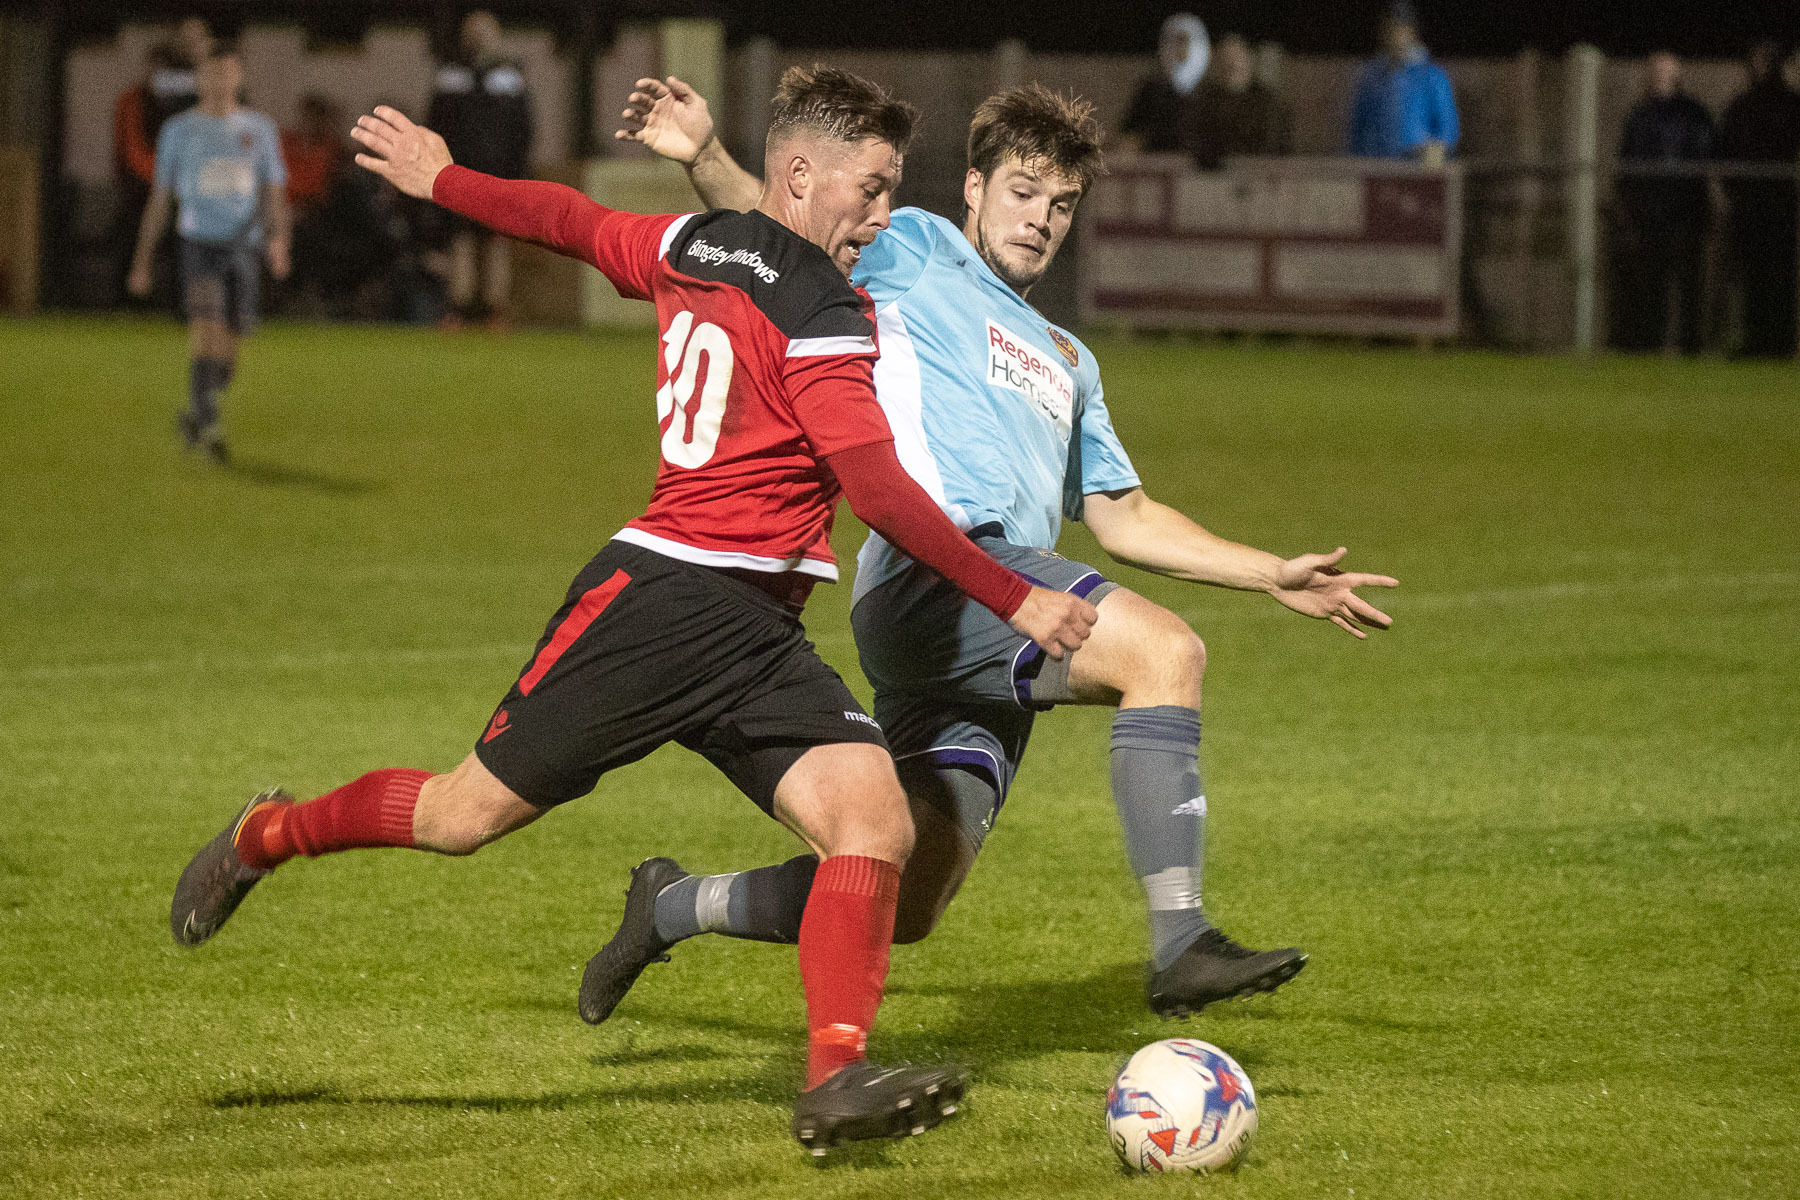 Aidan Kirby, front, was among the scorers for Silsden in their 2-2 draw with Staveley Miners Welfare. Picture: David Brett